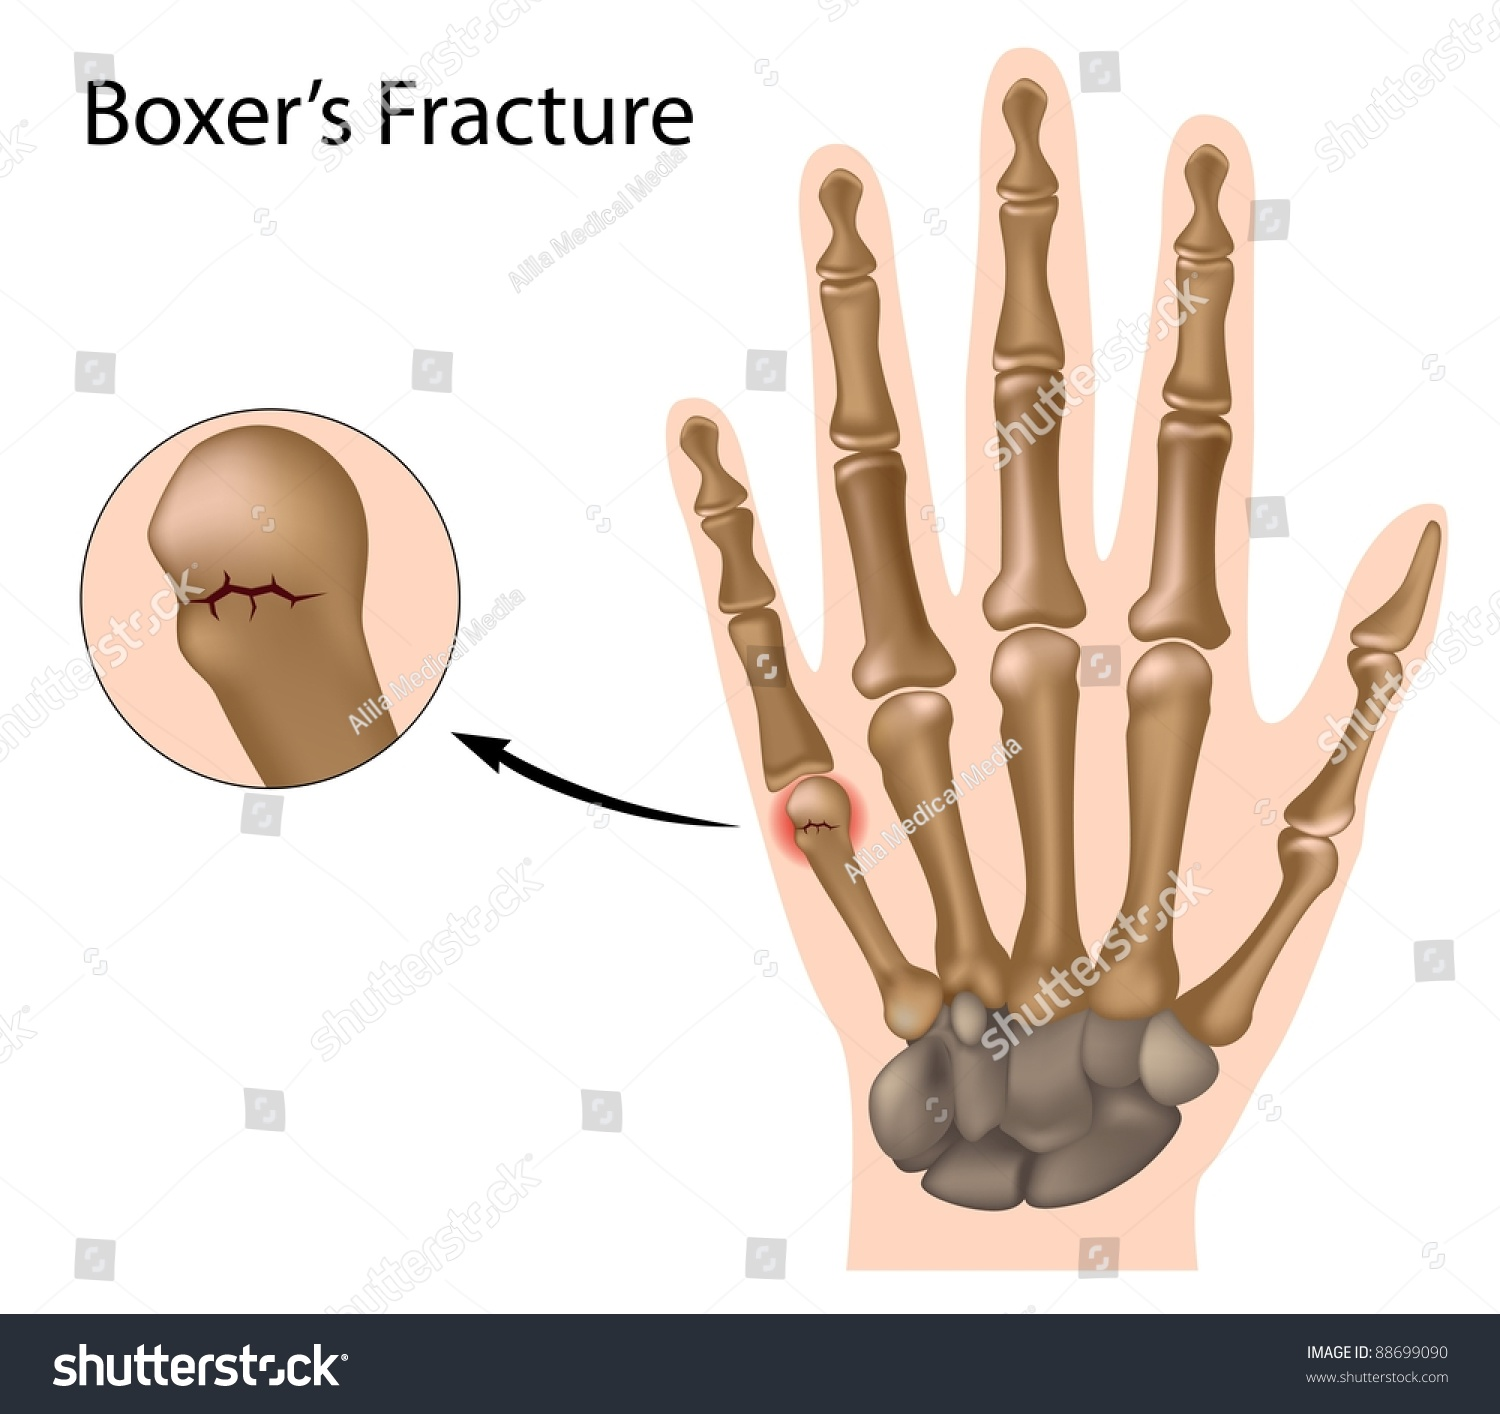 Boxers Fracture Most Common Finger Fracture Stock Illustration ...